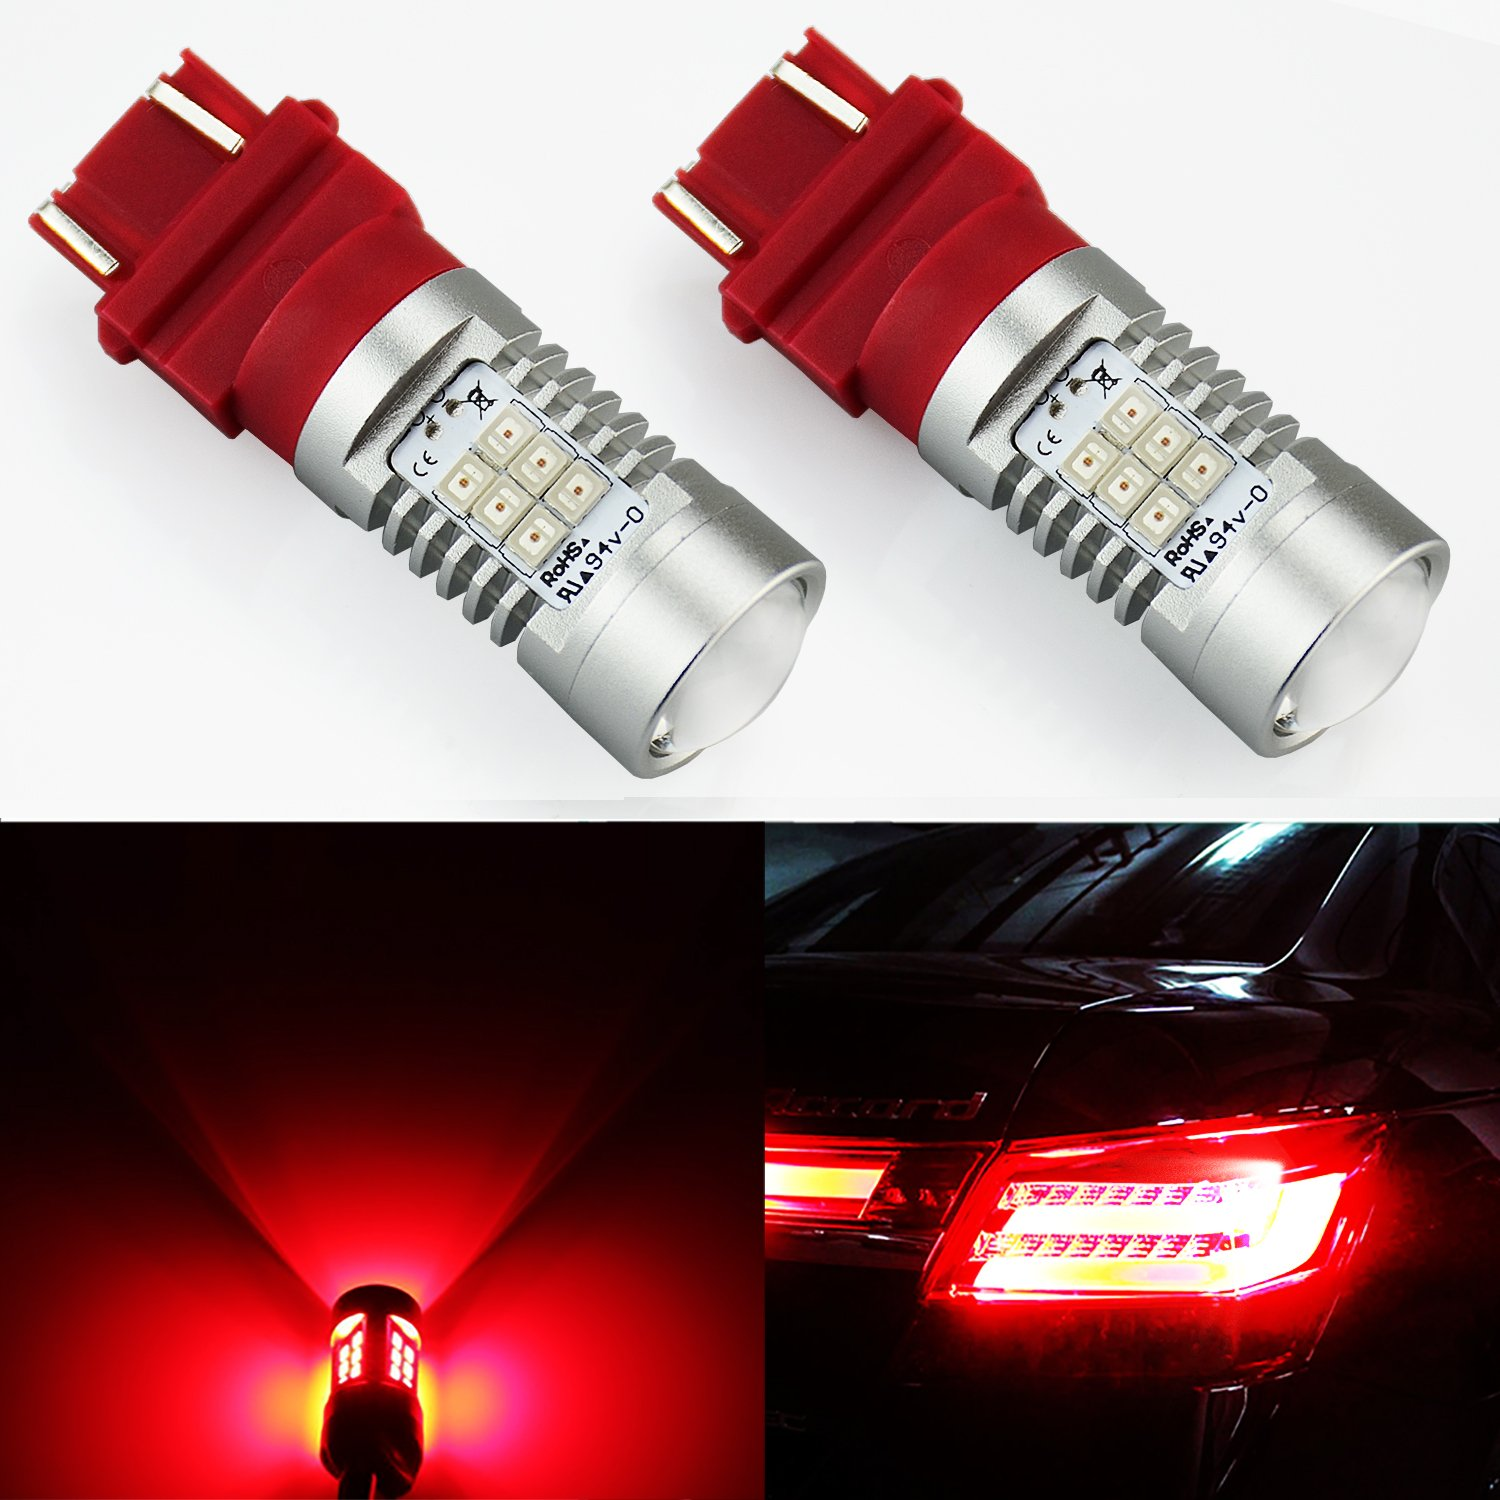 JDM ASTAR Extremely Bright PX Chipsets 3056 3156 3057 3157 LED Bulb For Brake Light Tail lights Turn Signal, Brilliant Red